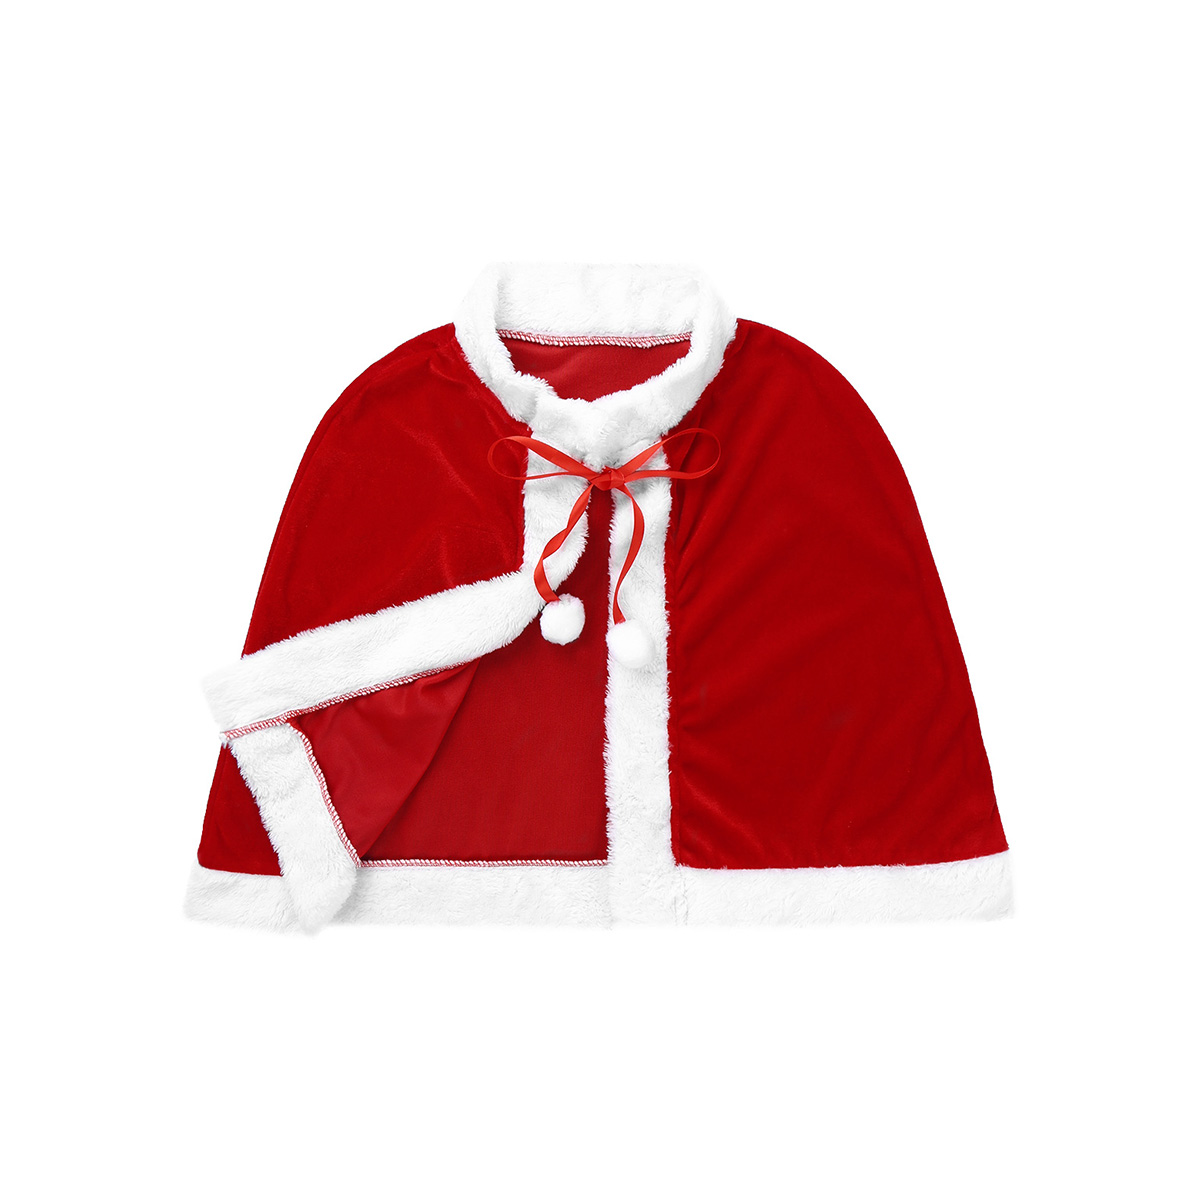 Kids Childrens/' Christmas Costume Cosplay Cape Cloak for Baby Boys Girls Clothes